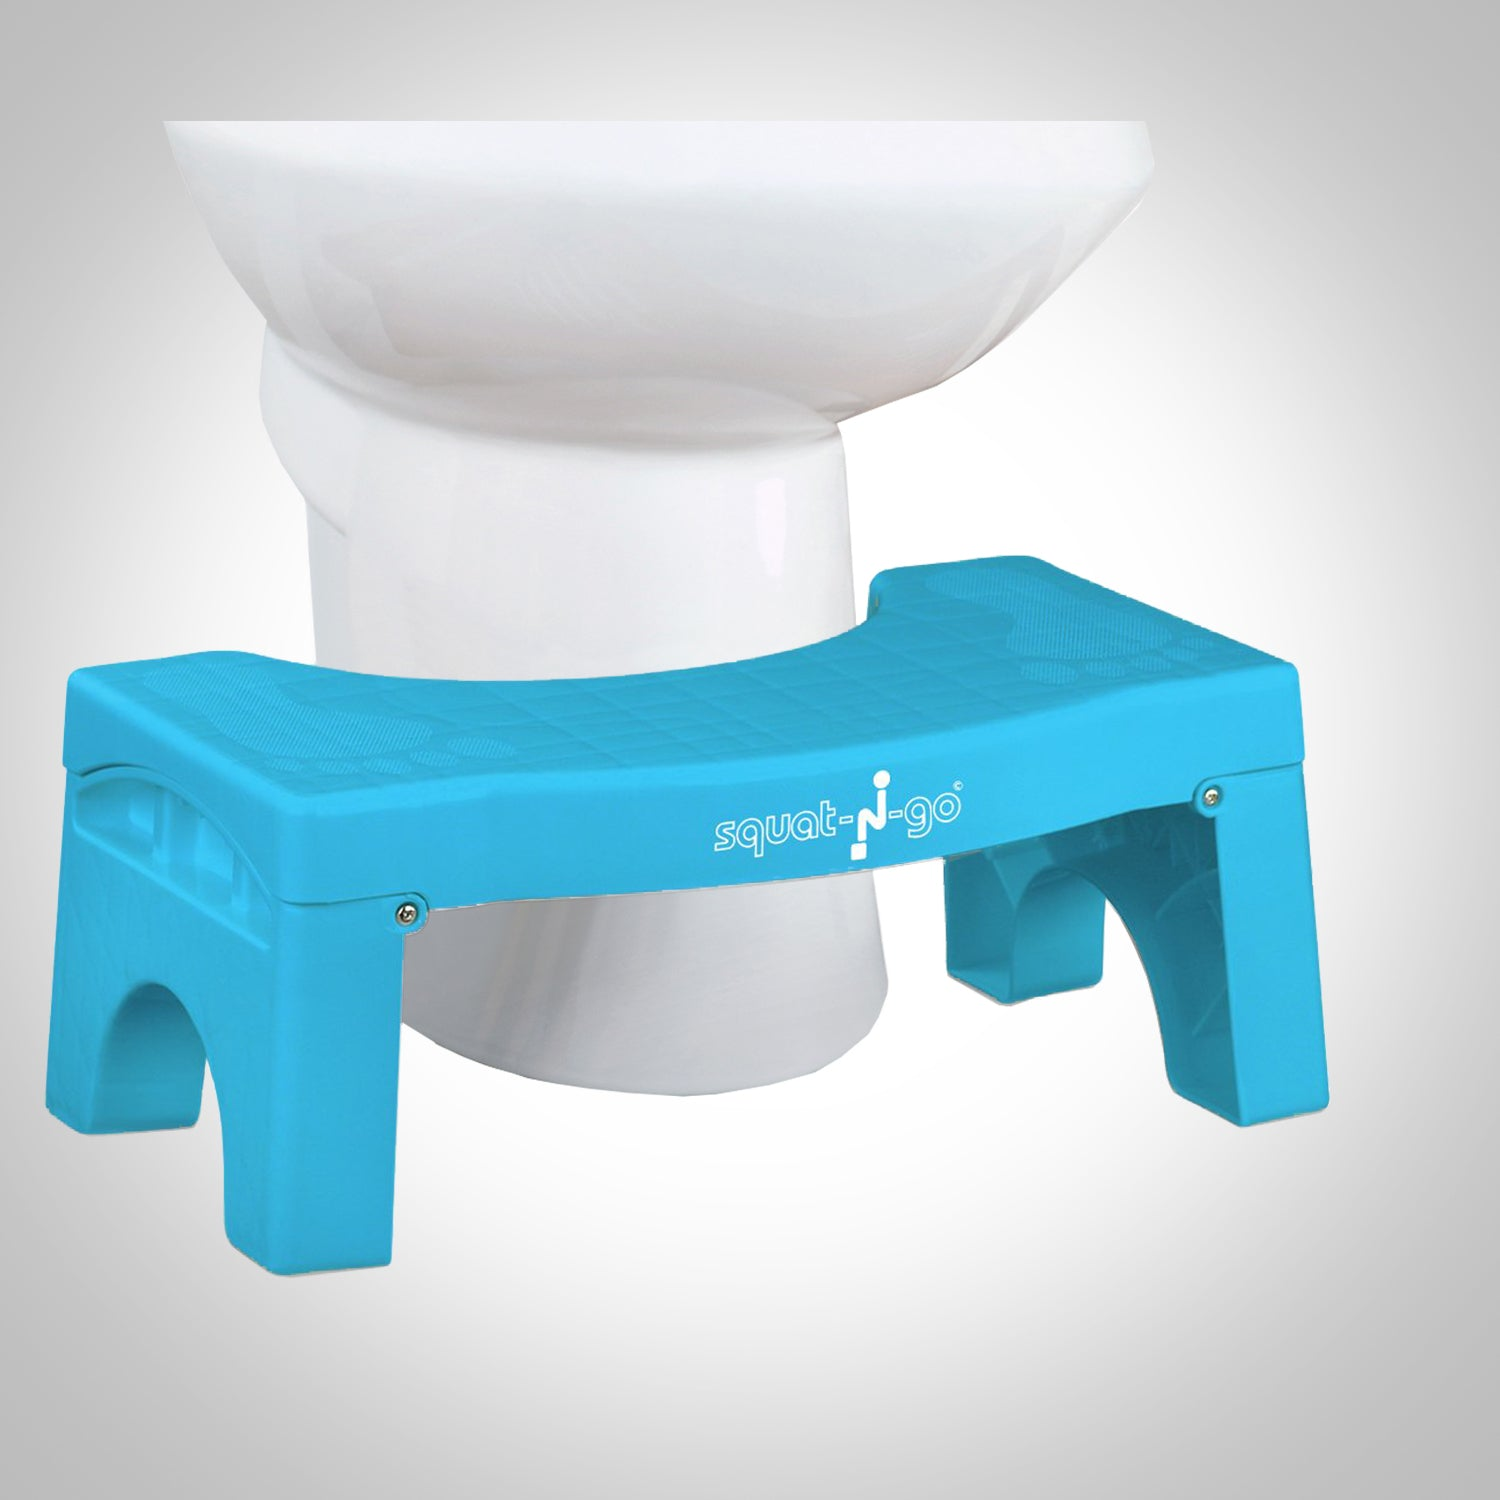 Fantastic 7 Foldable Toilet Stools Available In Multiple Colors Cjindustries Chair Design For Home Cjindustriesco